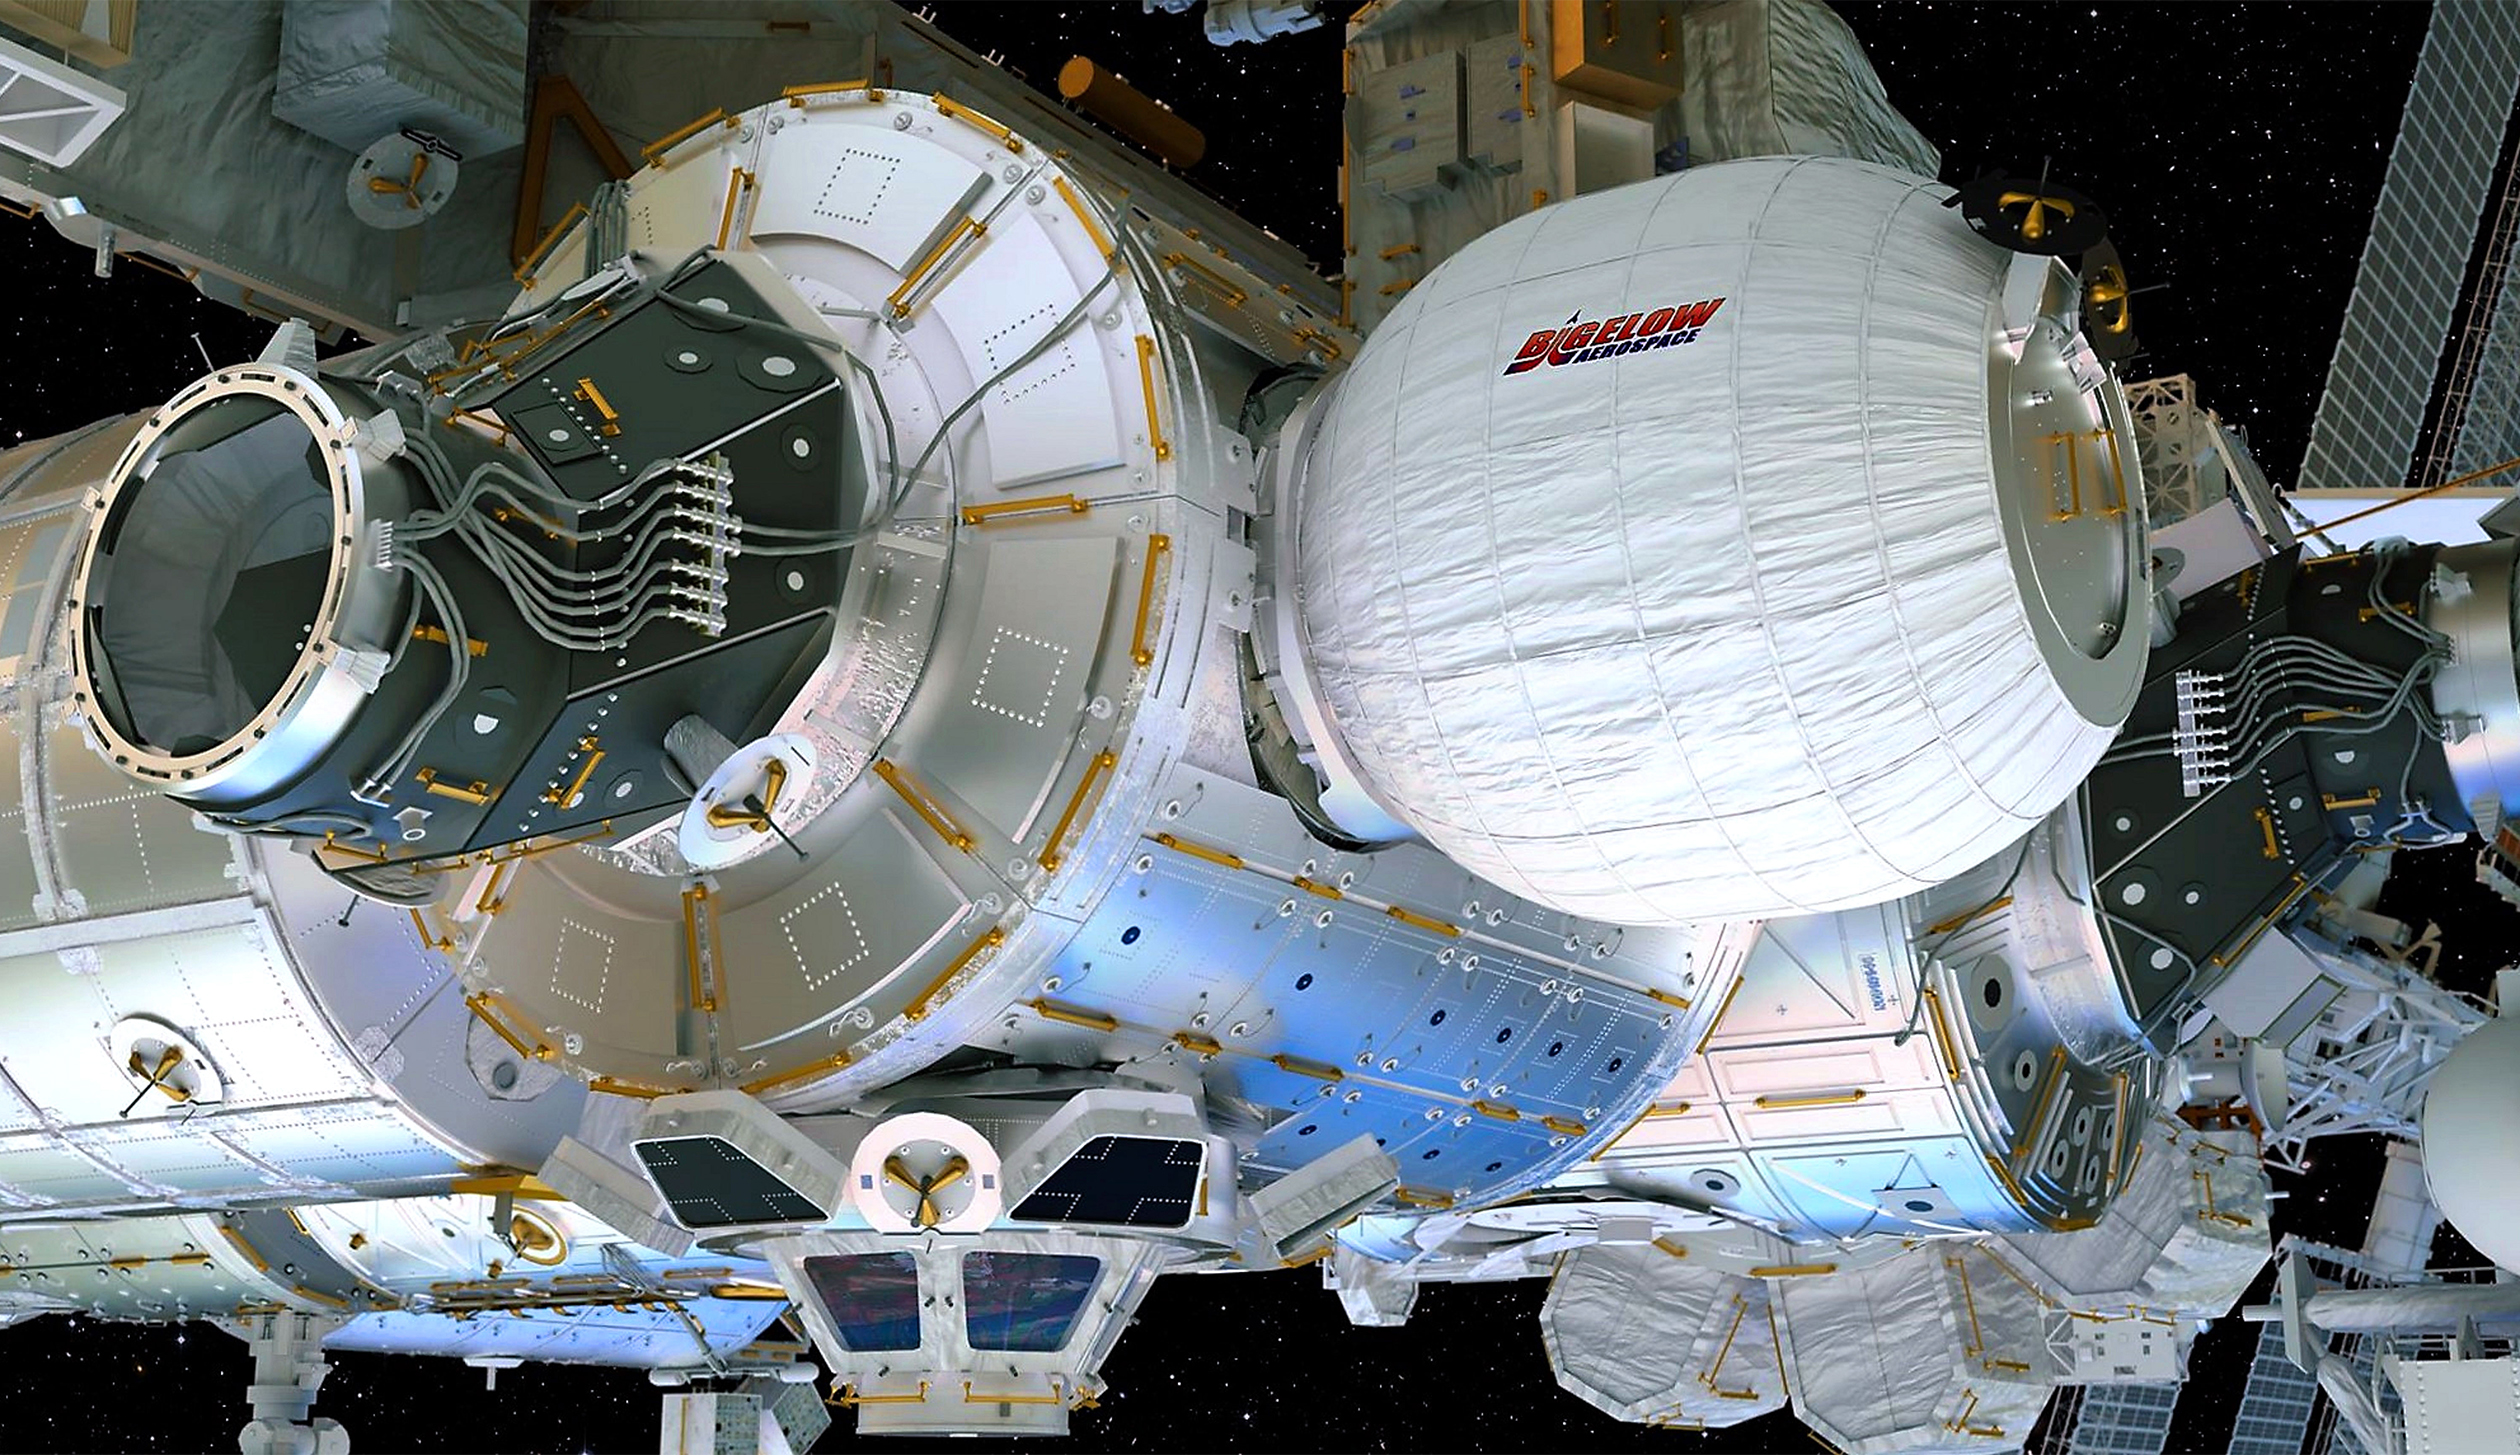 An artist's rendering of the space habitat, now attached to the ISS.